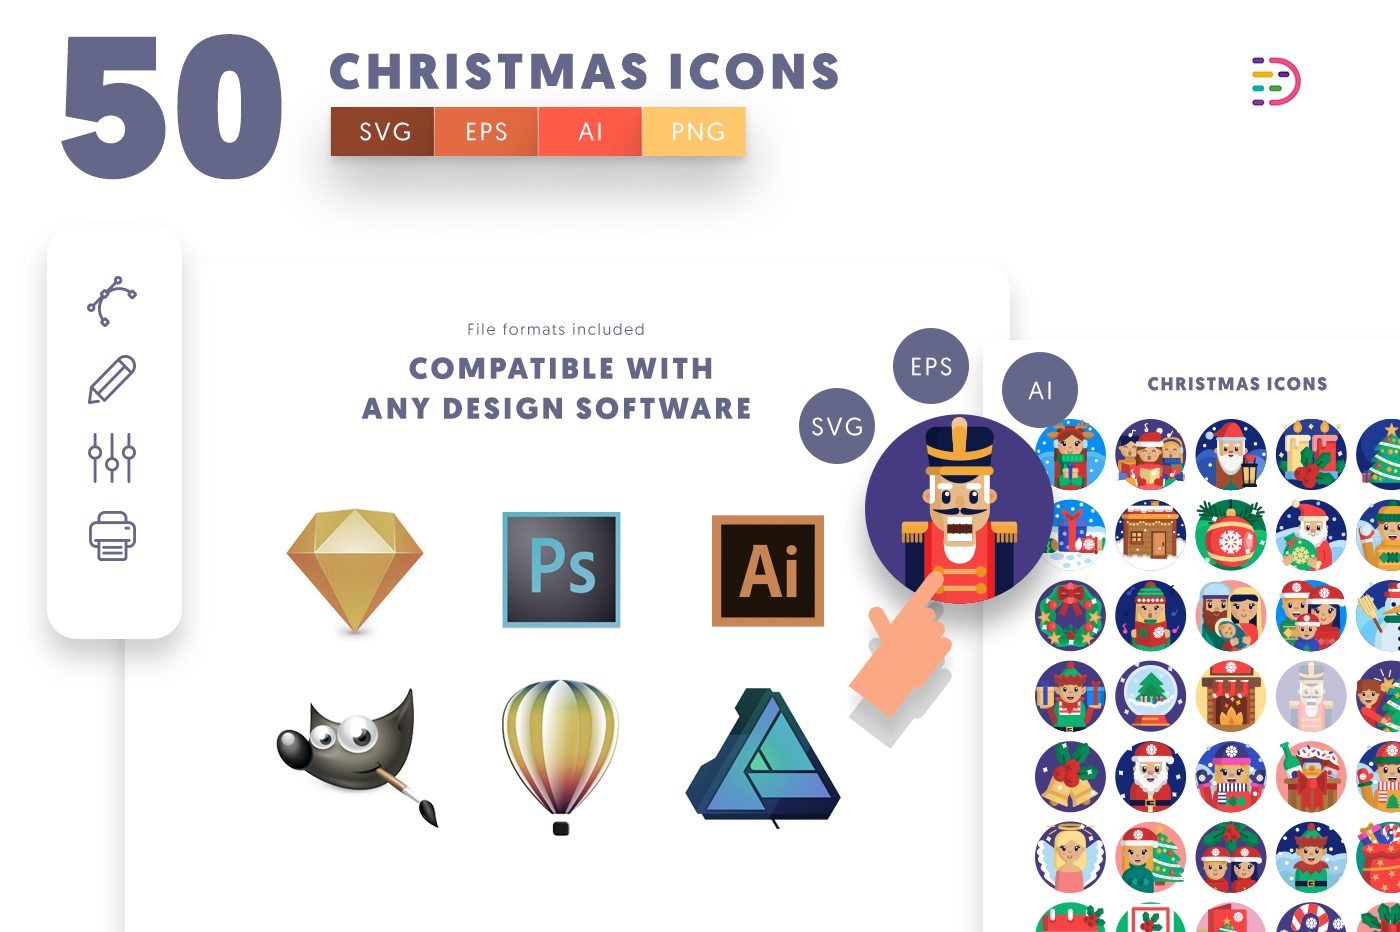 full vector 50 Christmas Icons EPS, SVG, PNG